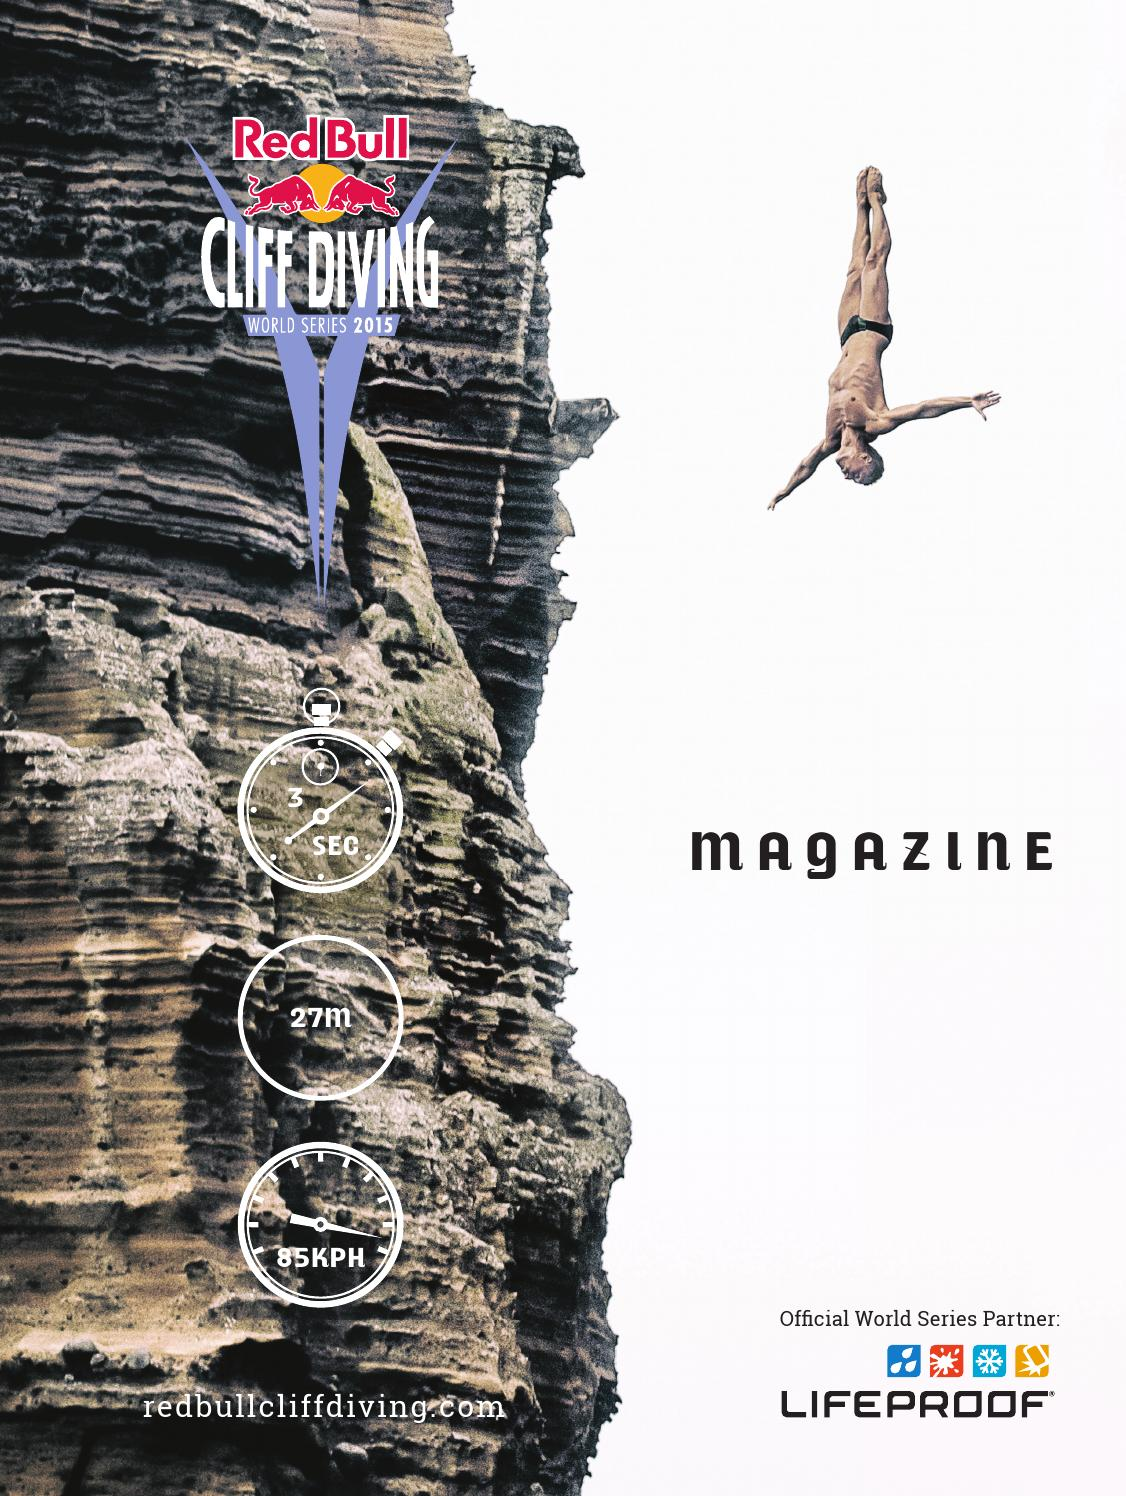 Red Bull Cliff Diving Height : cliff, diving, height, Cliff, Diving, Media, House, Issuu